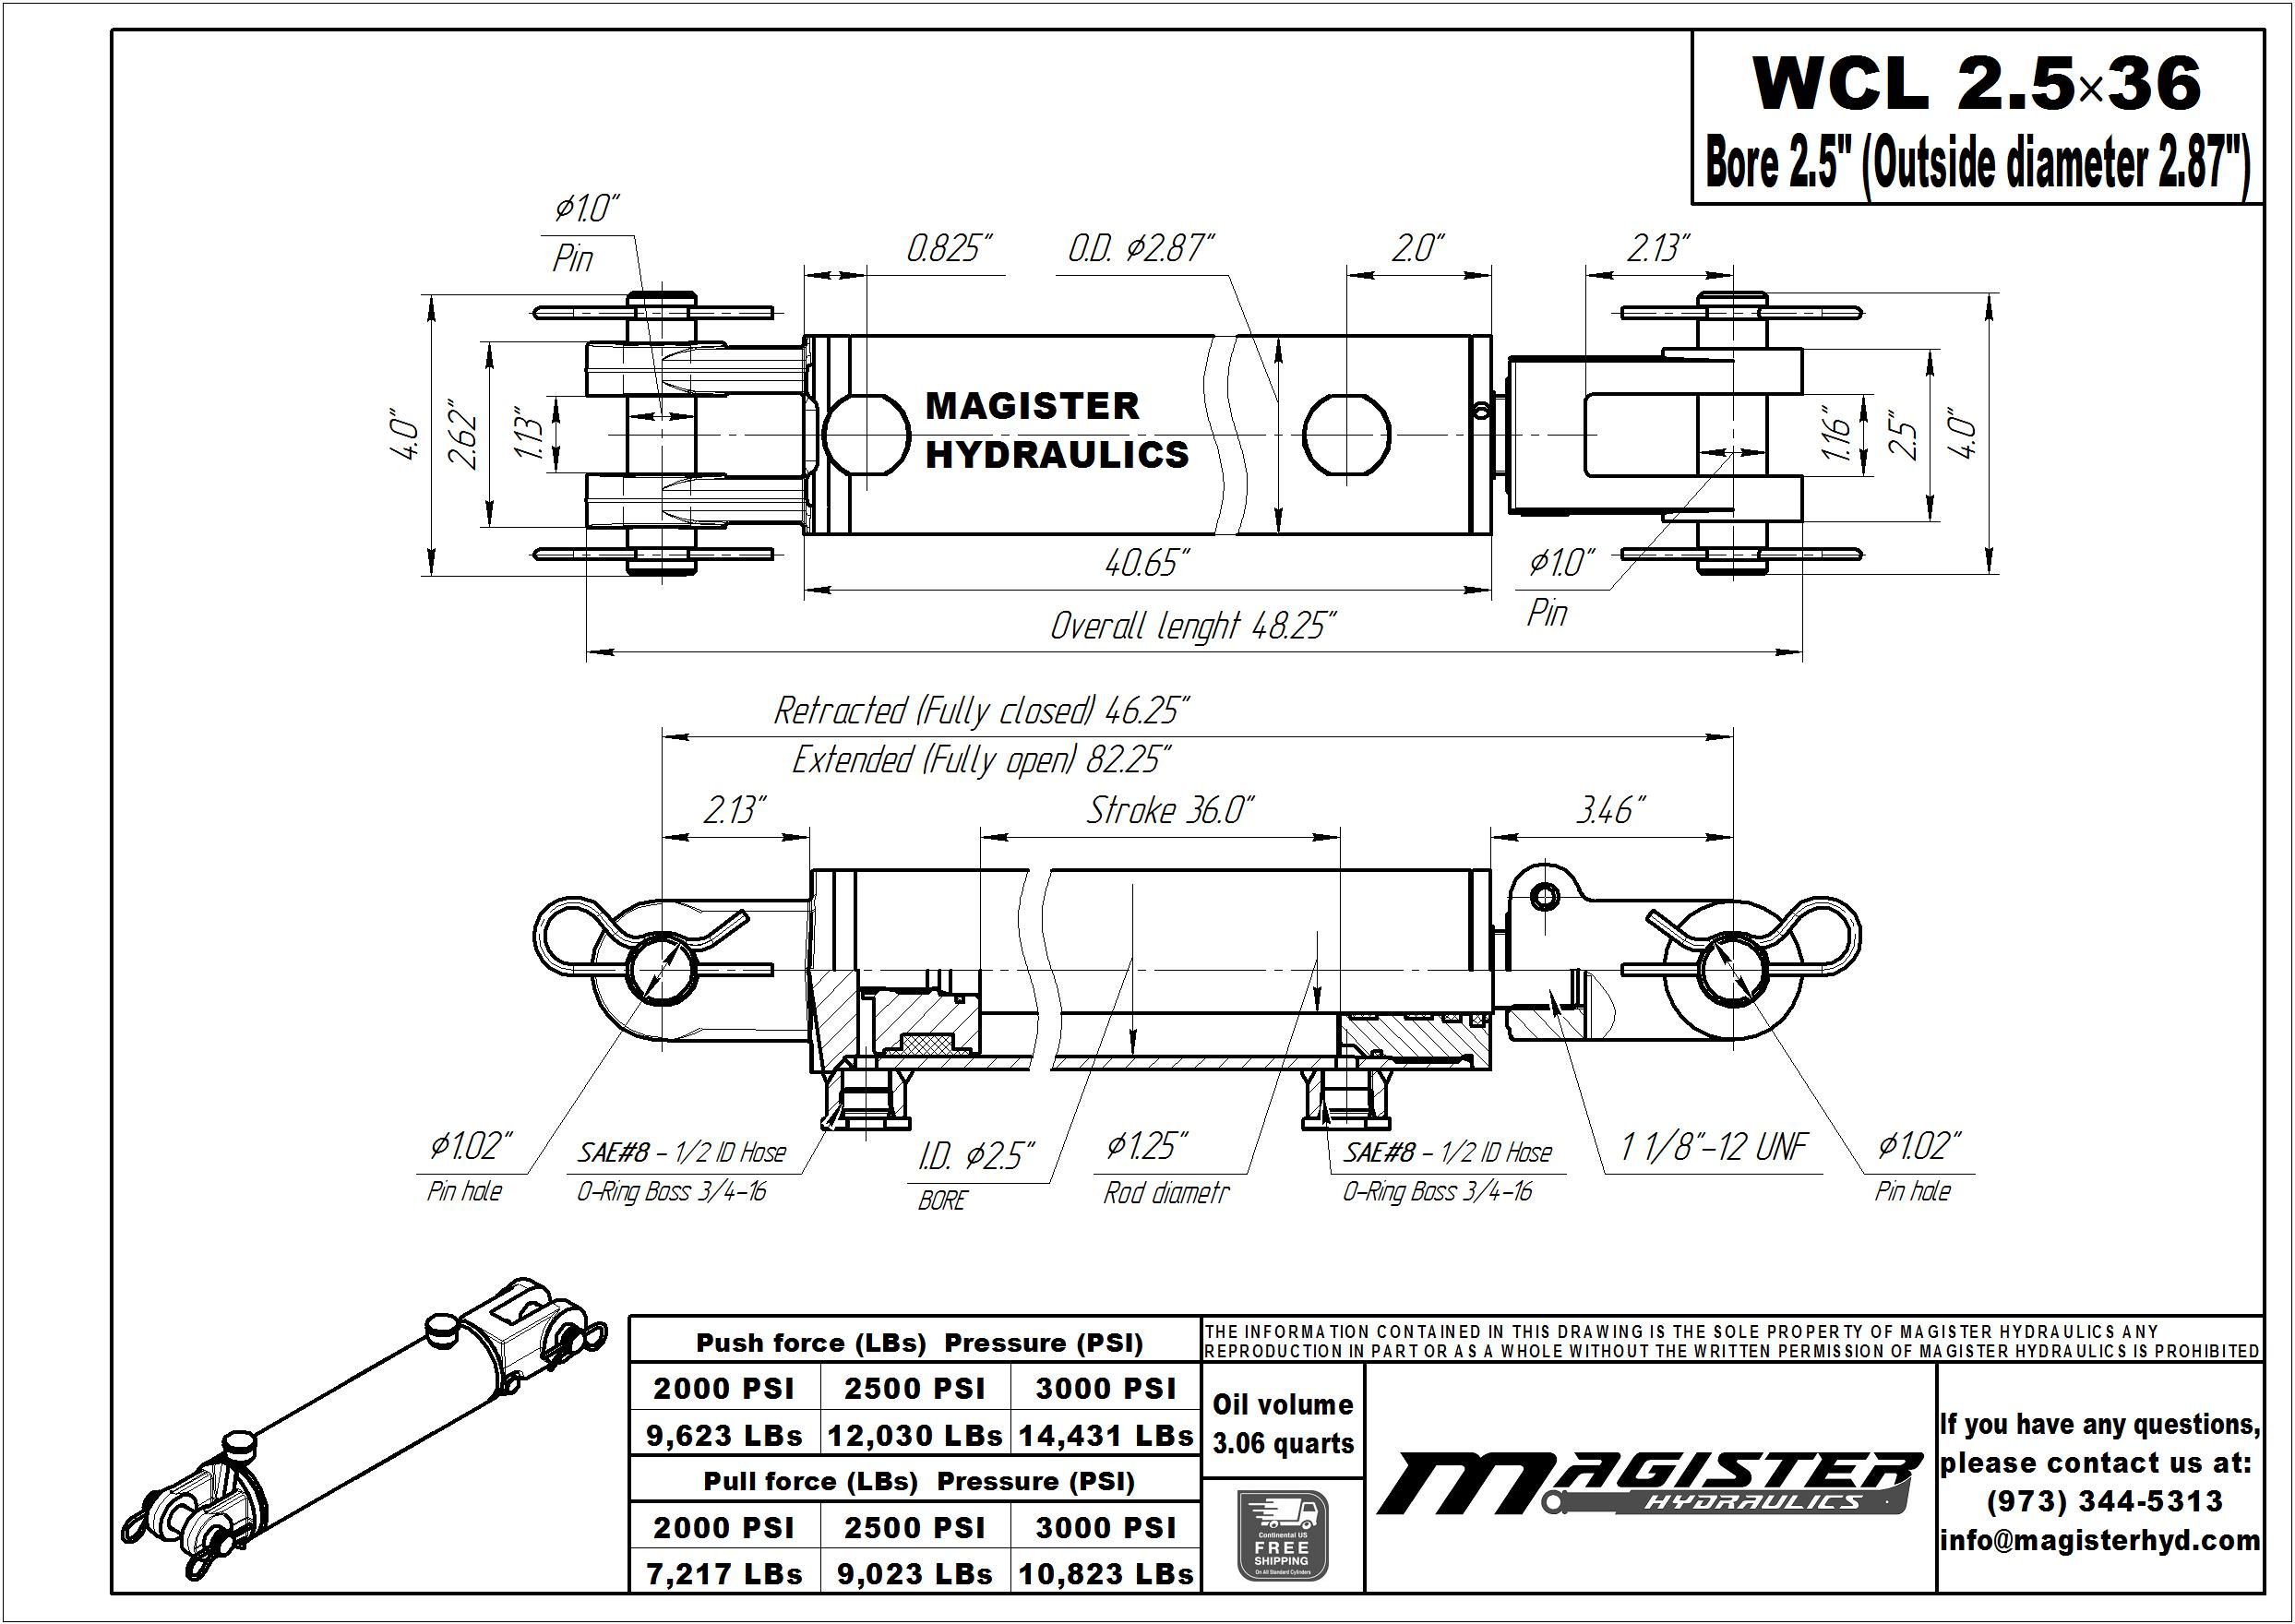 2.5 bore x 36 stroke hydraulic cylinder, welded clevis double acting cylinder | Magister Hydraulics